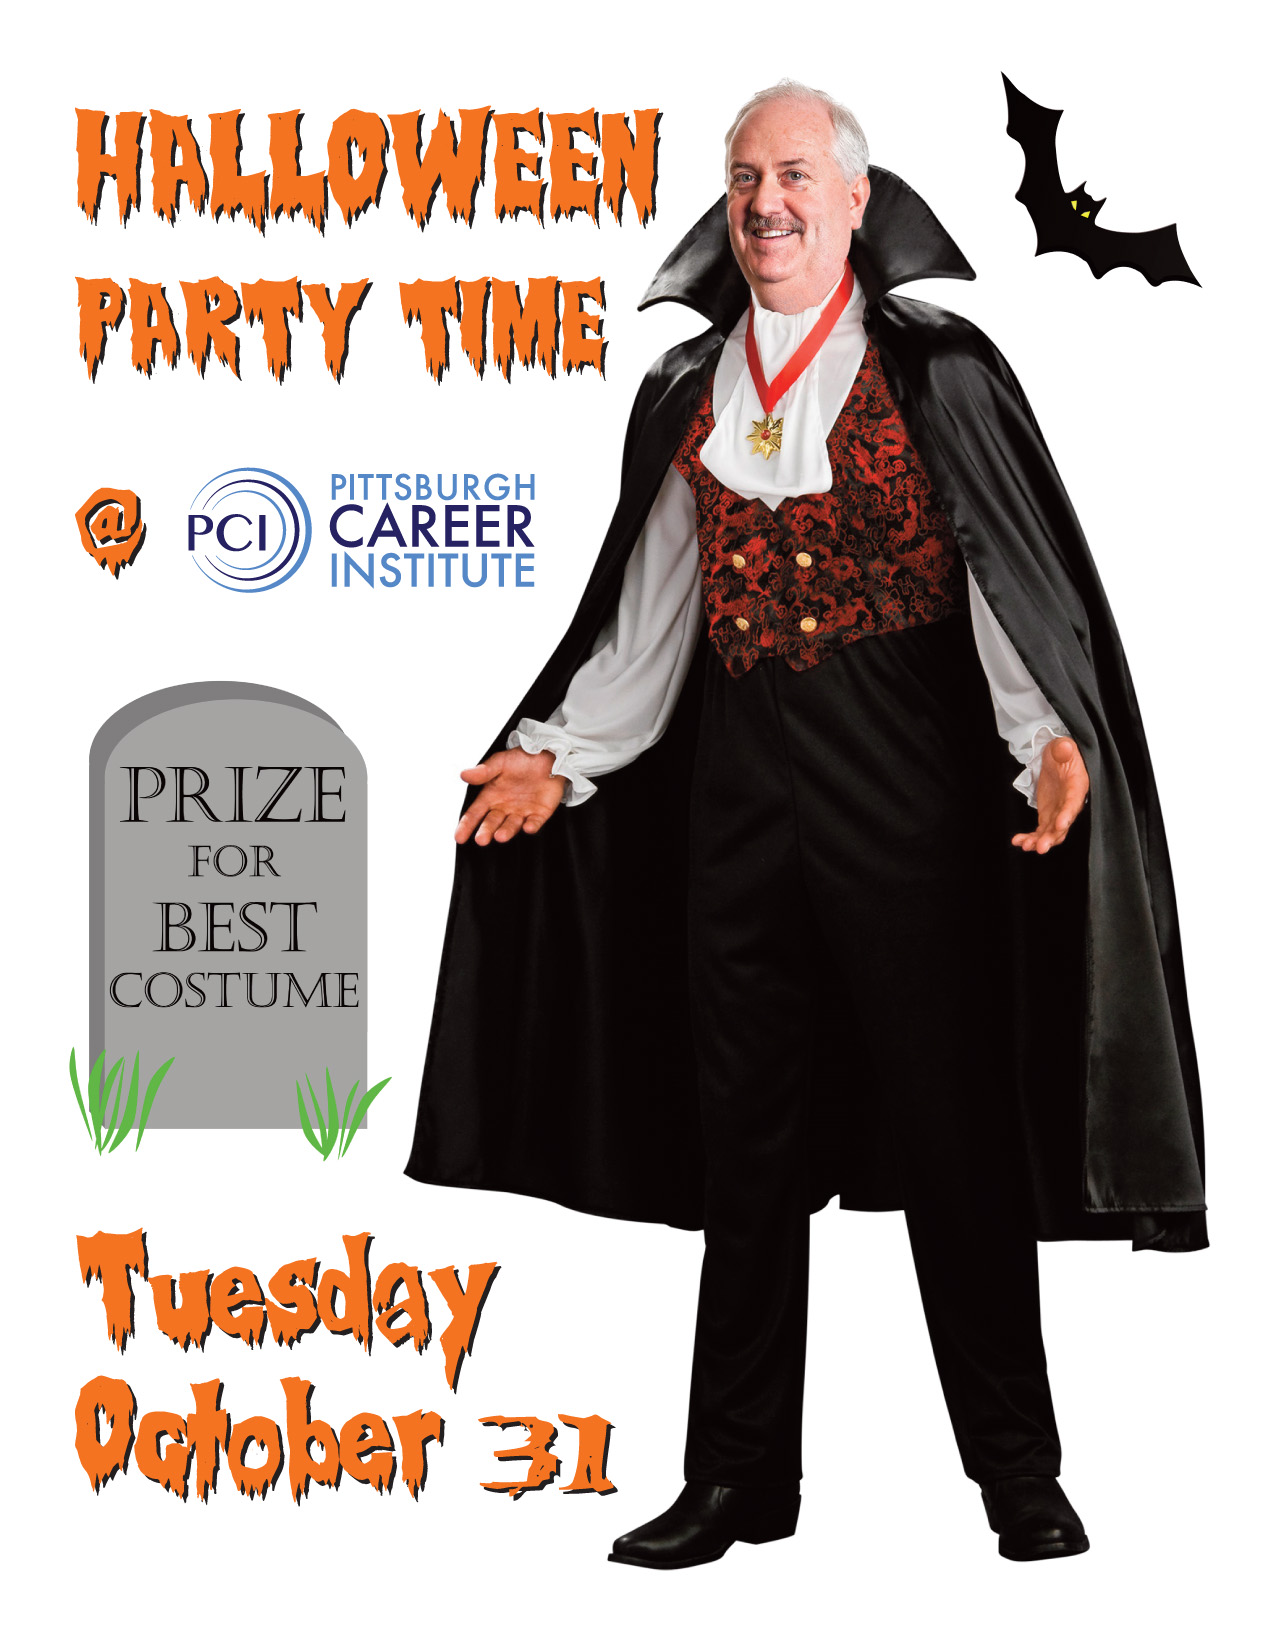 halloween party time | pittsburgh career institute